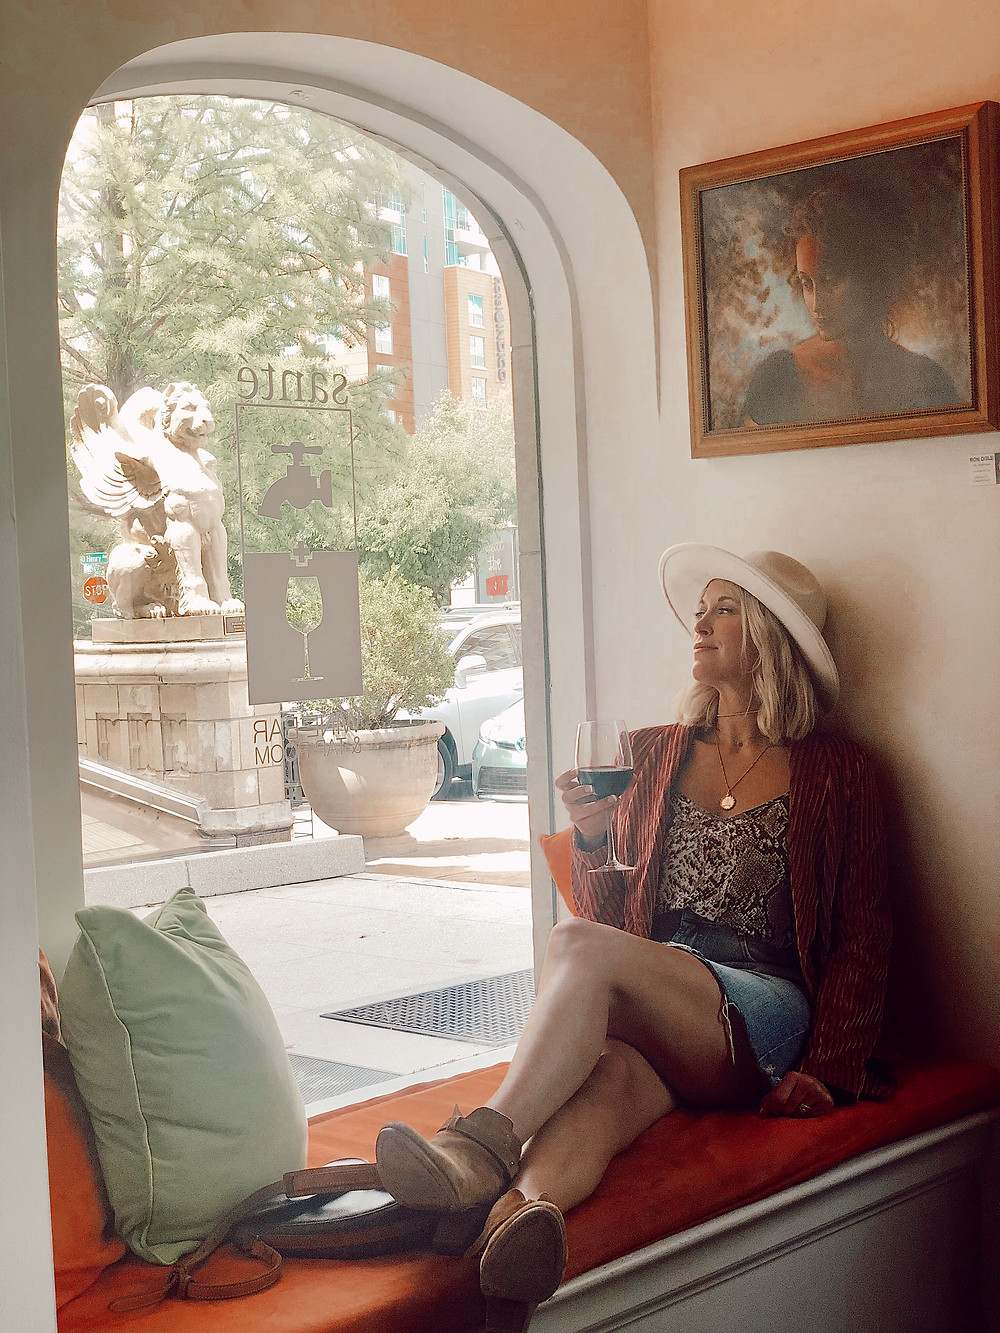 Woman sits in window seat holding a glass of red wine at Santé Wine Bar and Tap Room in the Grove Arcade in Asheville North Carolina. Local travel guide and lifestyle blogger The Tony Townie.